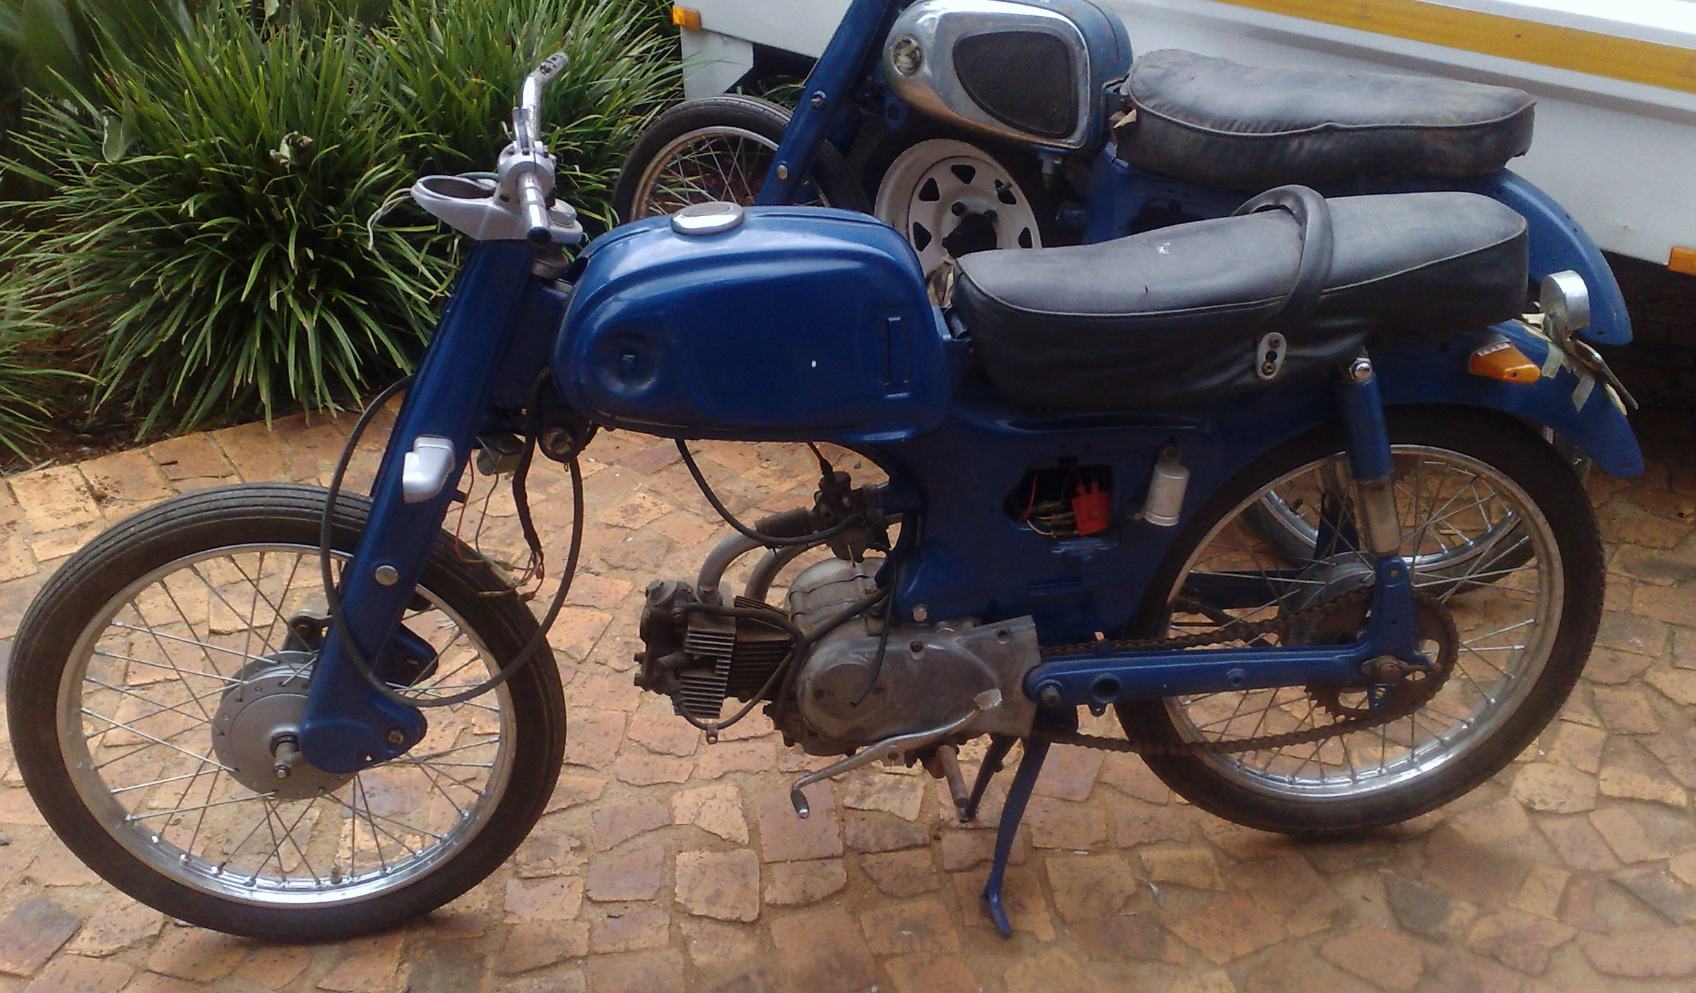 1963 Honda C1 10 before